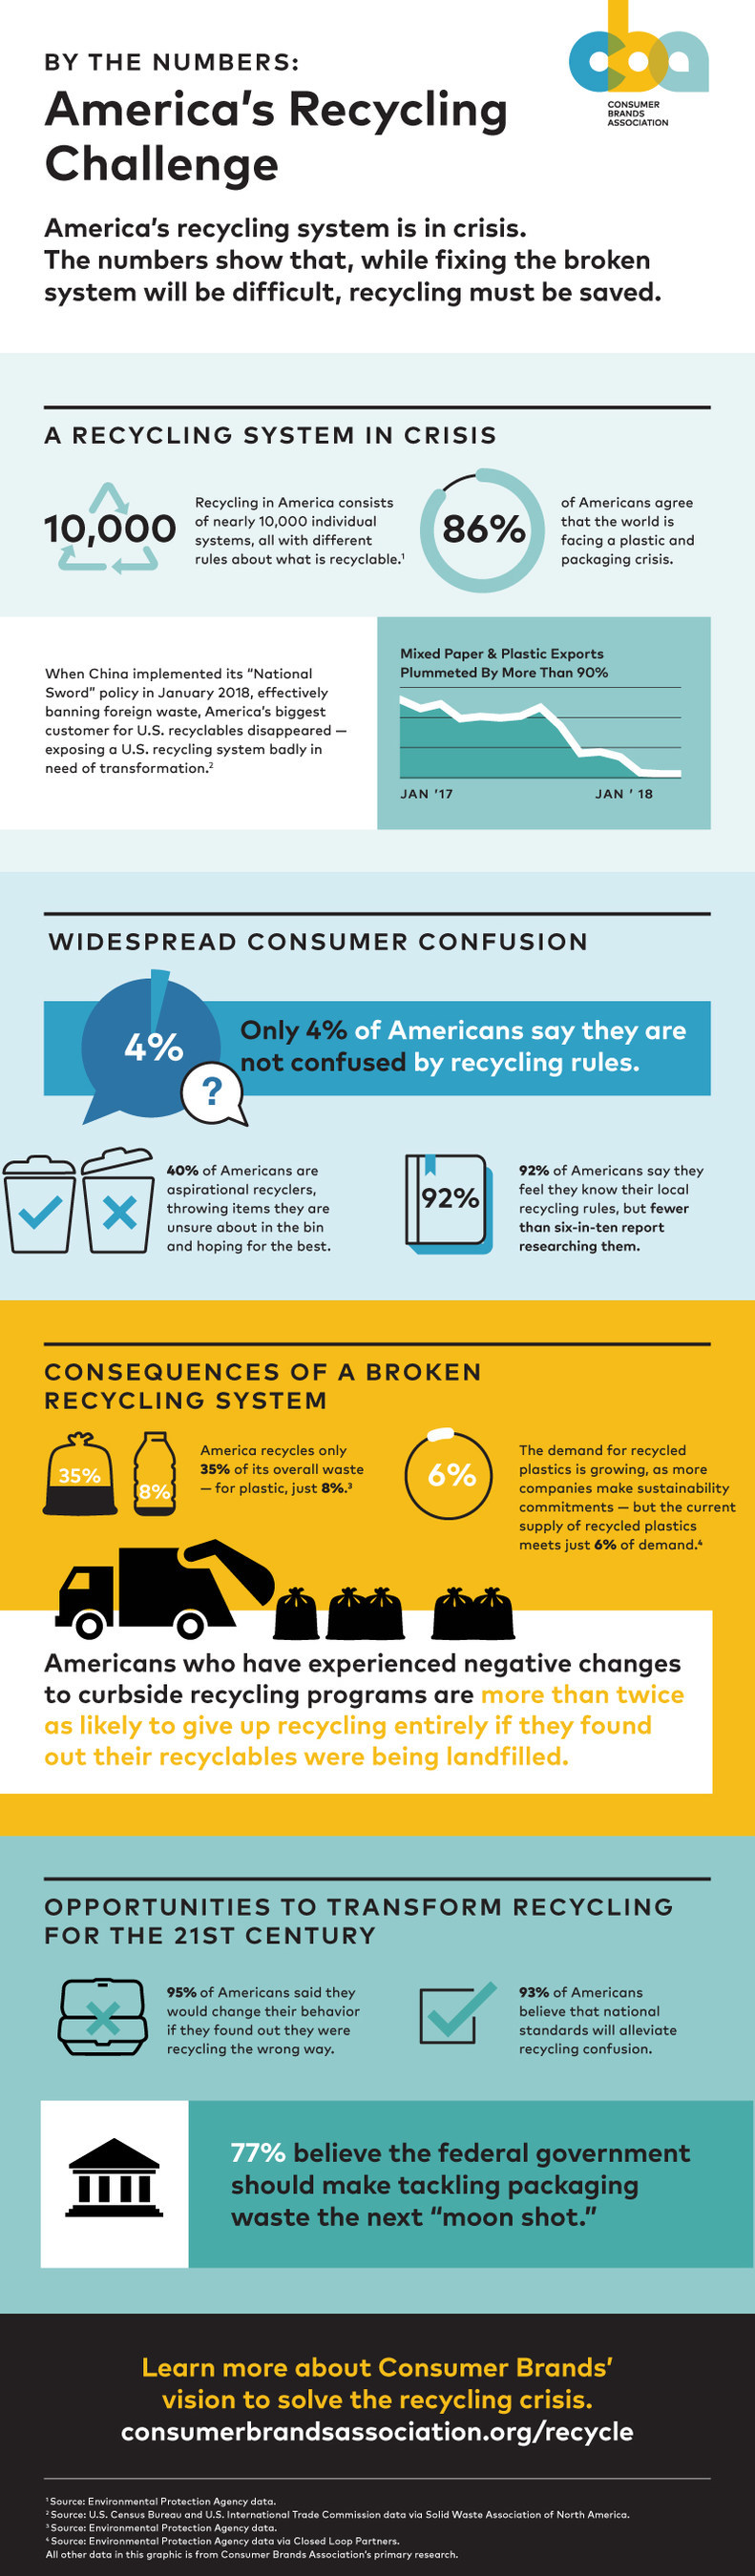 Infographic - By the Numbers: America's Recycling Challenge